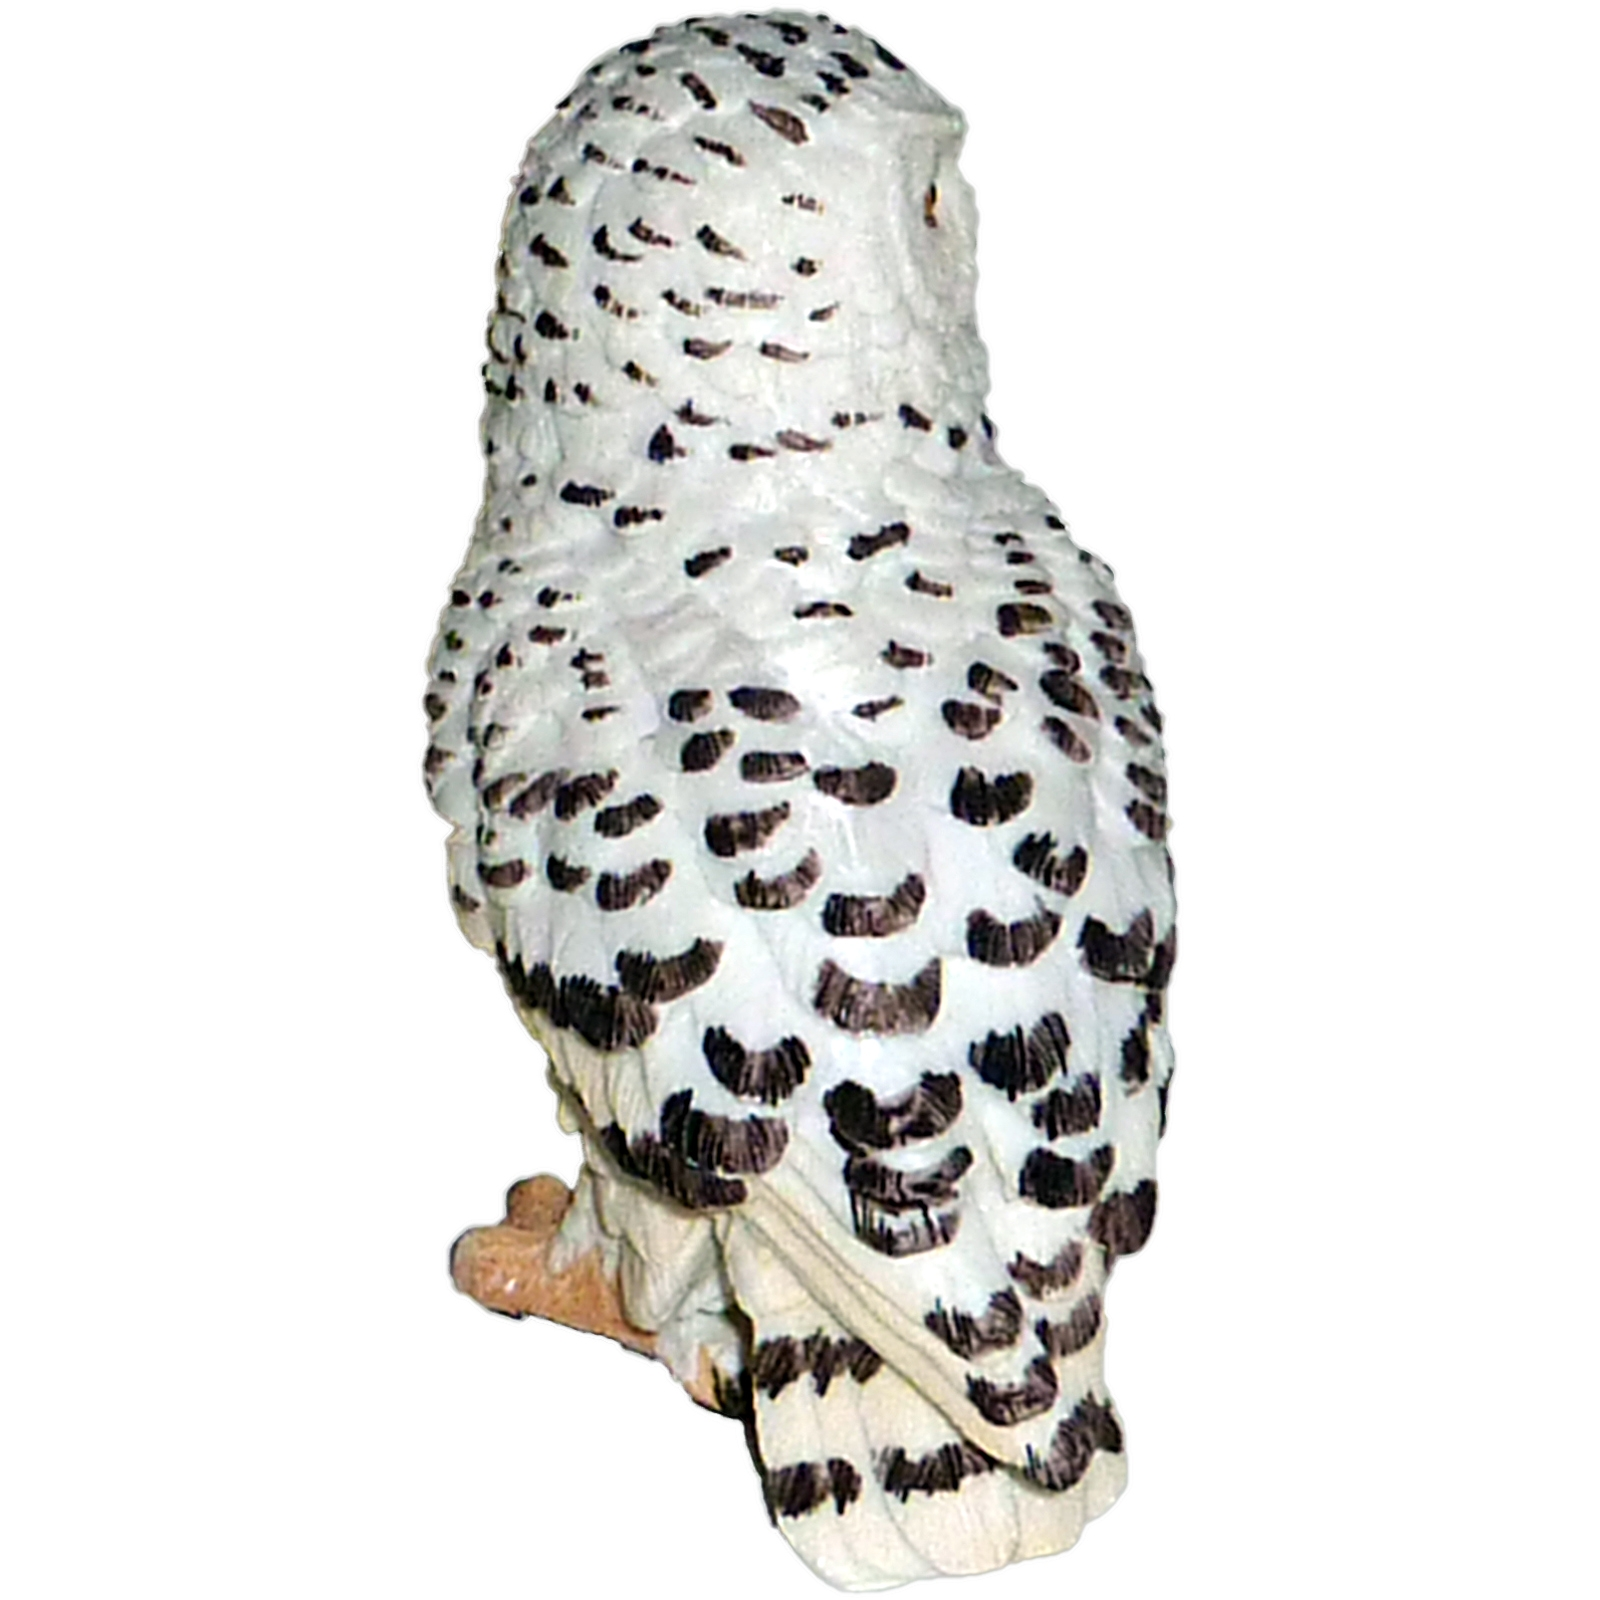 13cm Ornament Figurine Natural World Collection Eagle Owl by Juliana